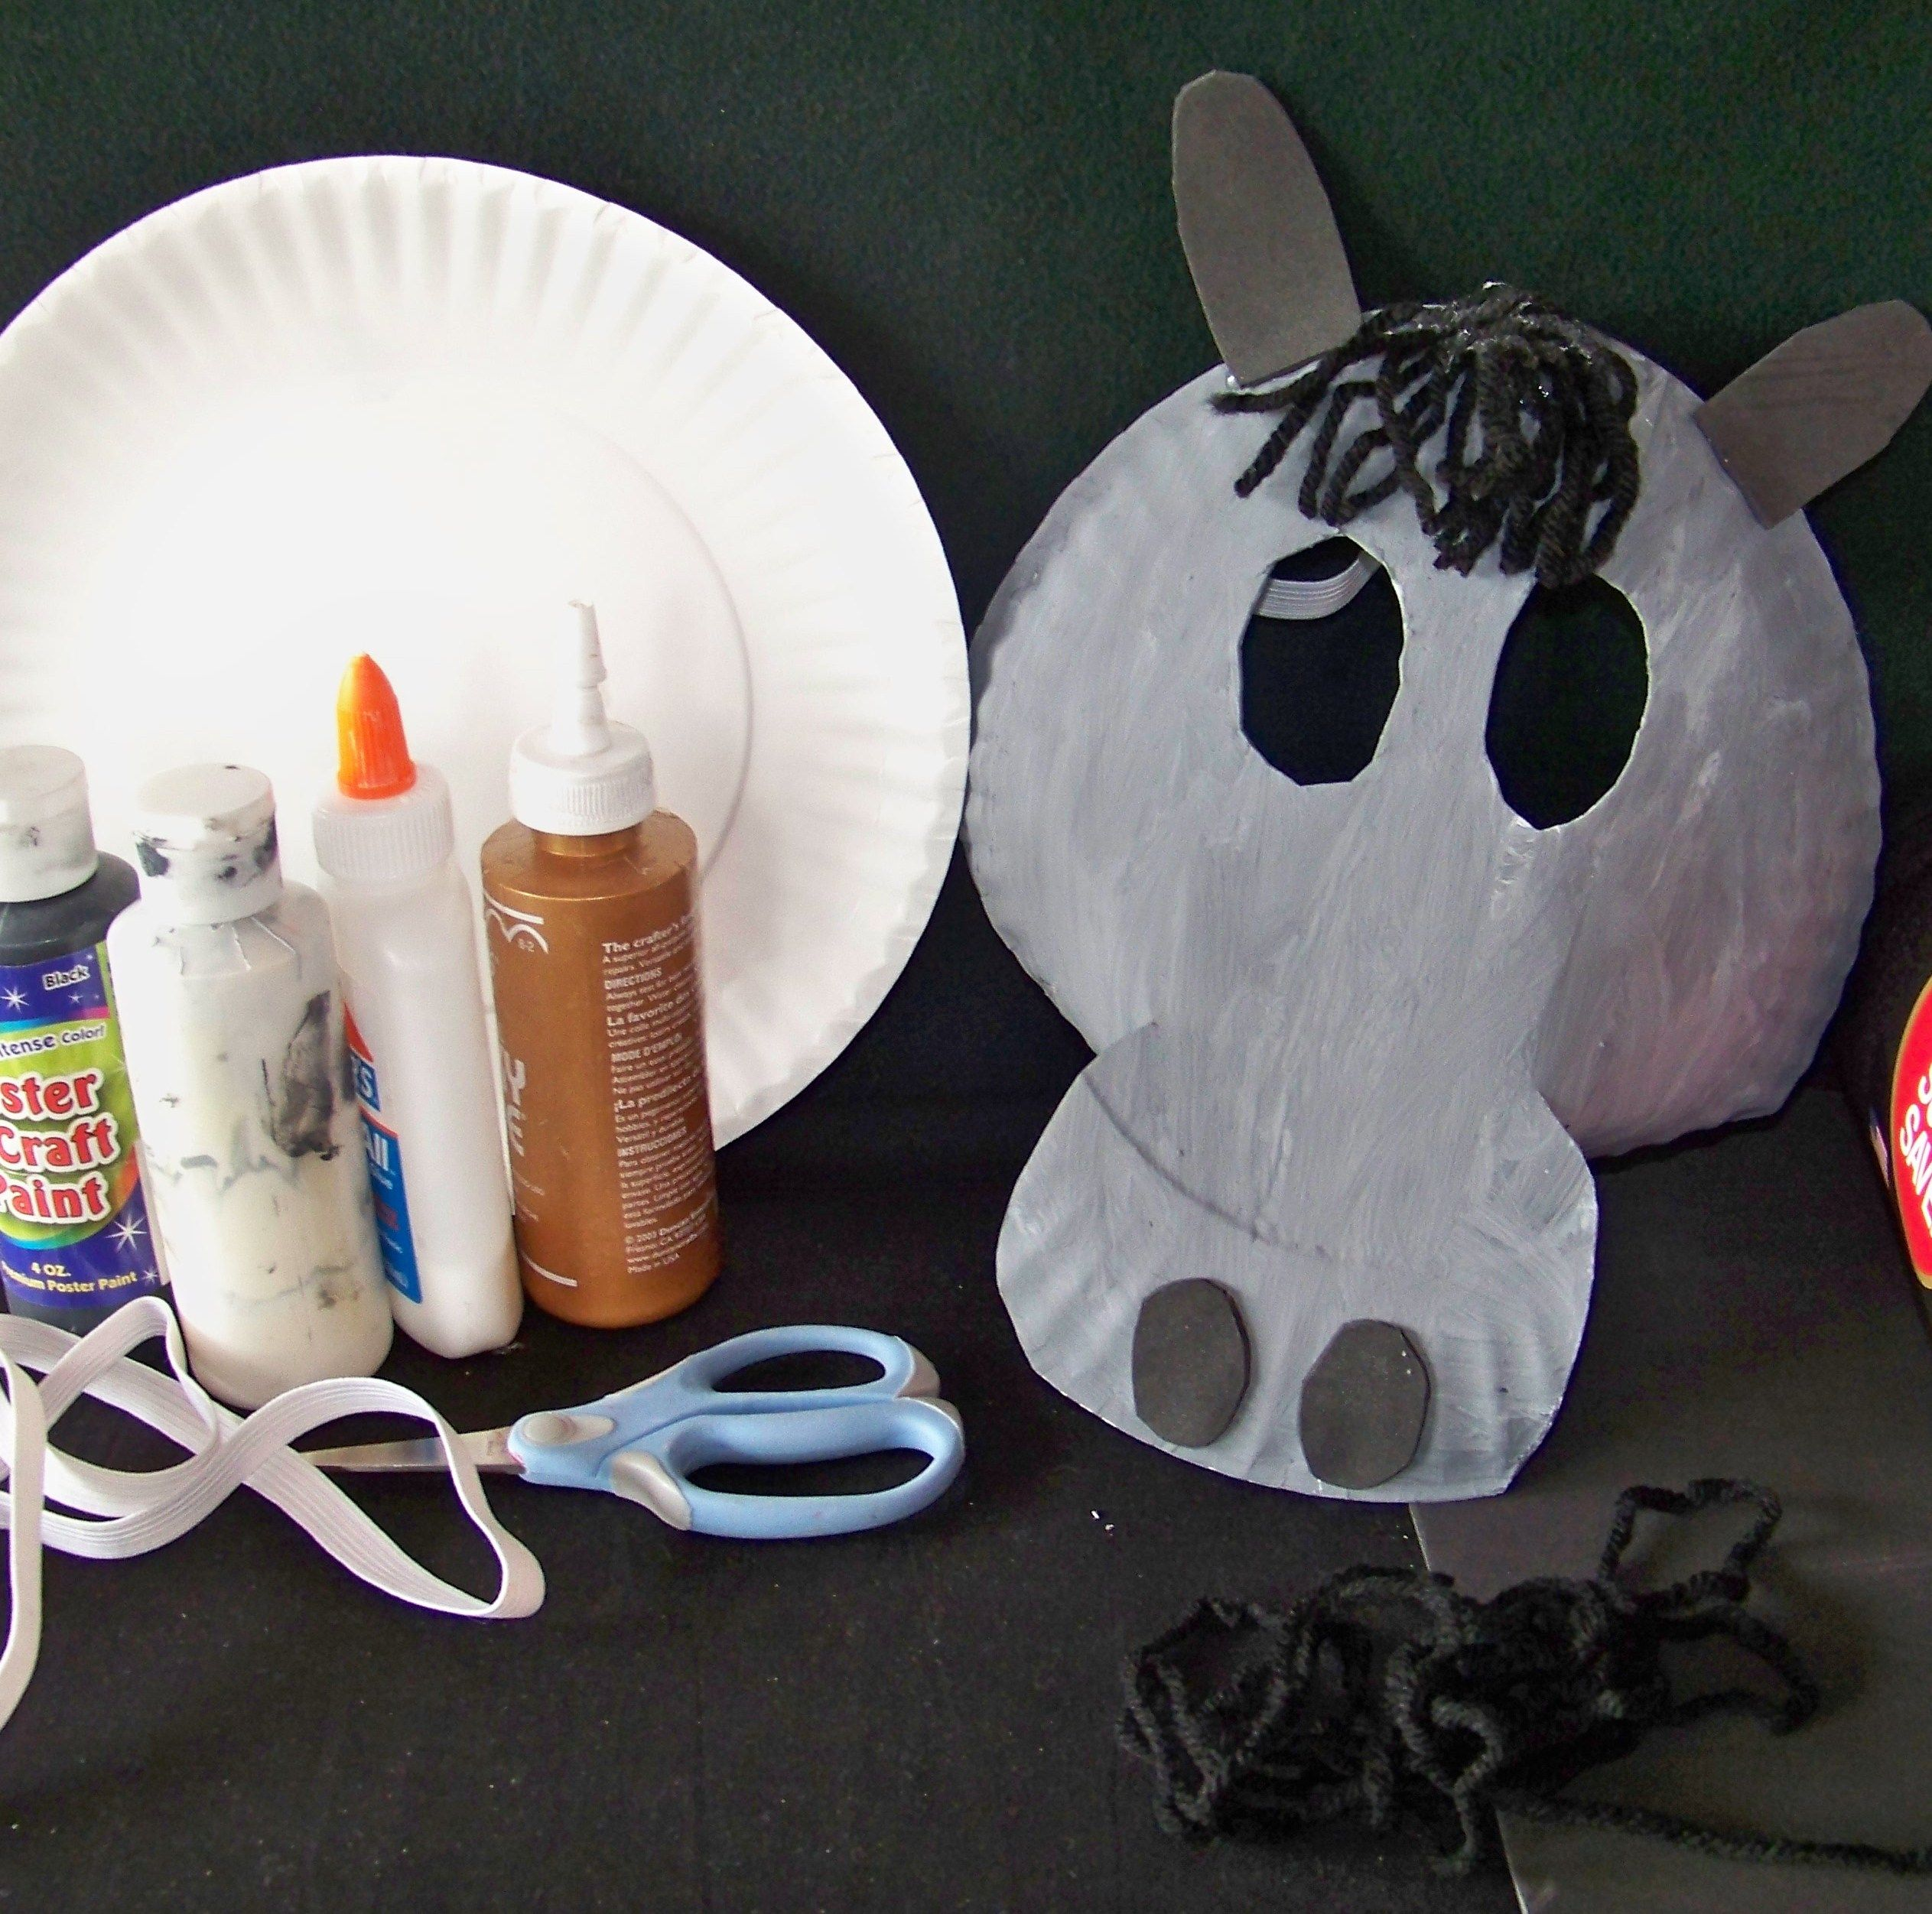 donkey-mask/ going to attach this to a stick for Palm Sunday